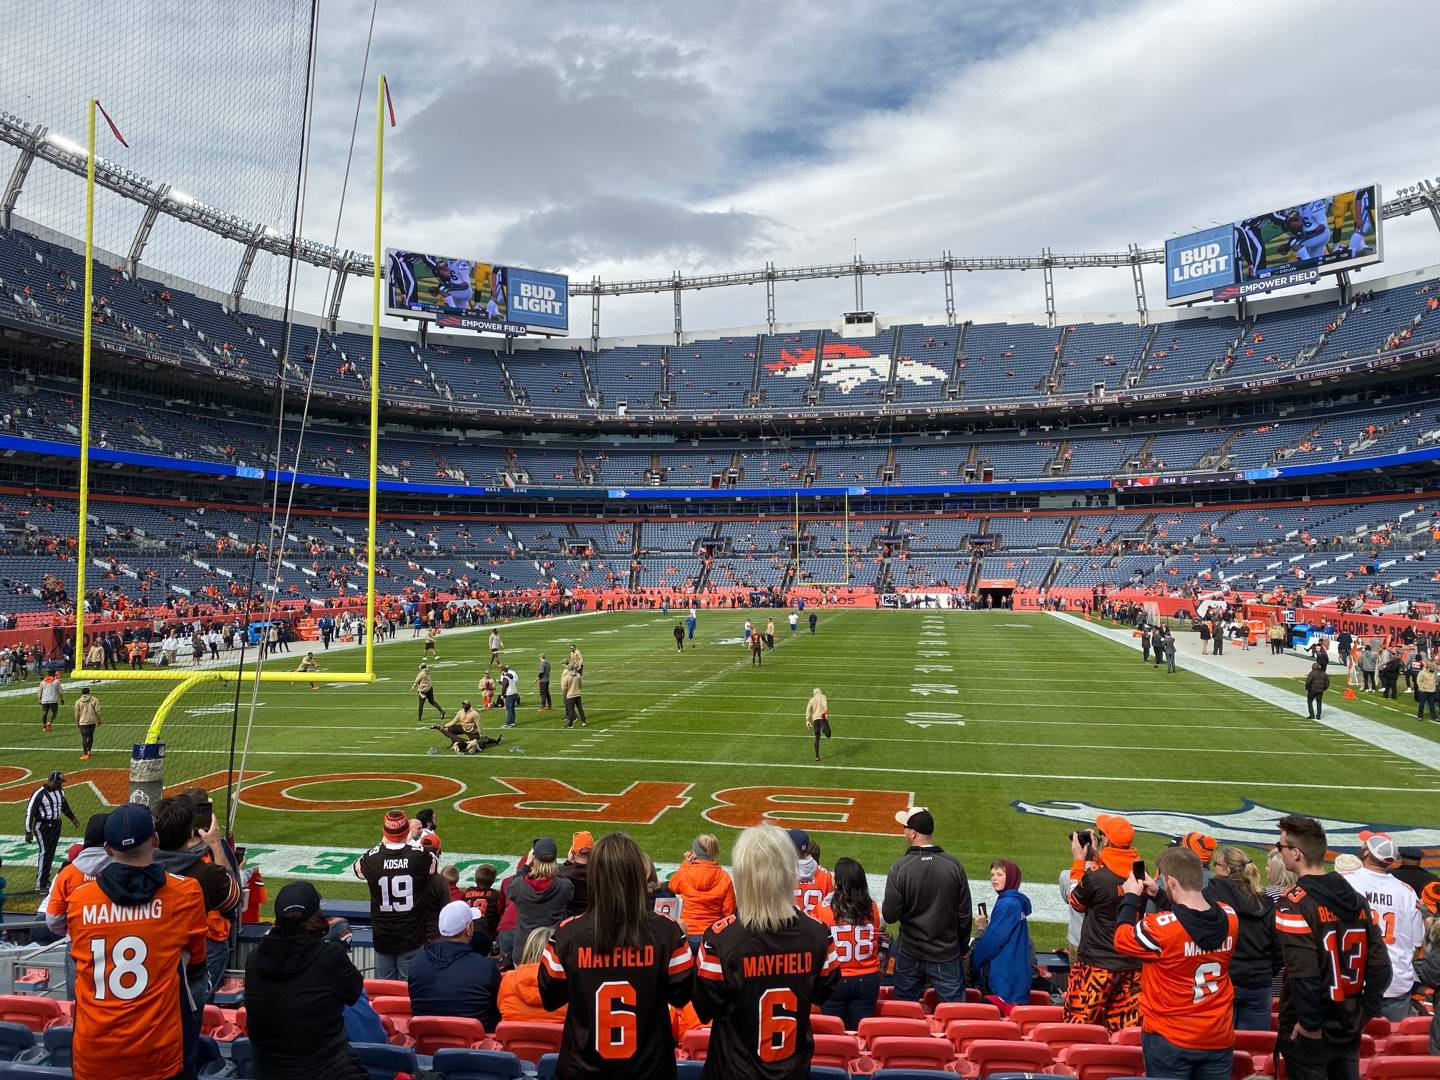 Empower Field at Mile High Stadium Section 131 Row 12 Seat 10